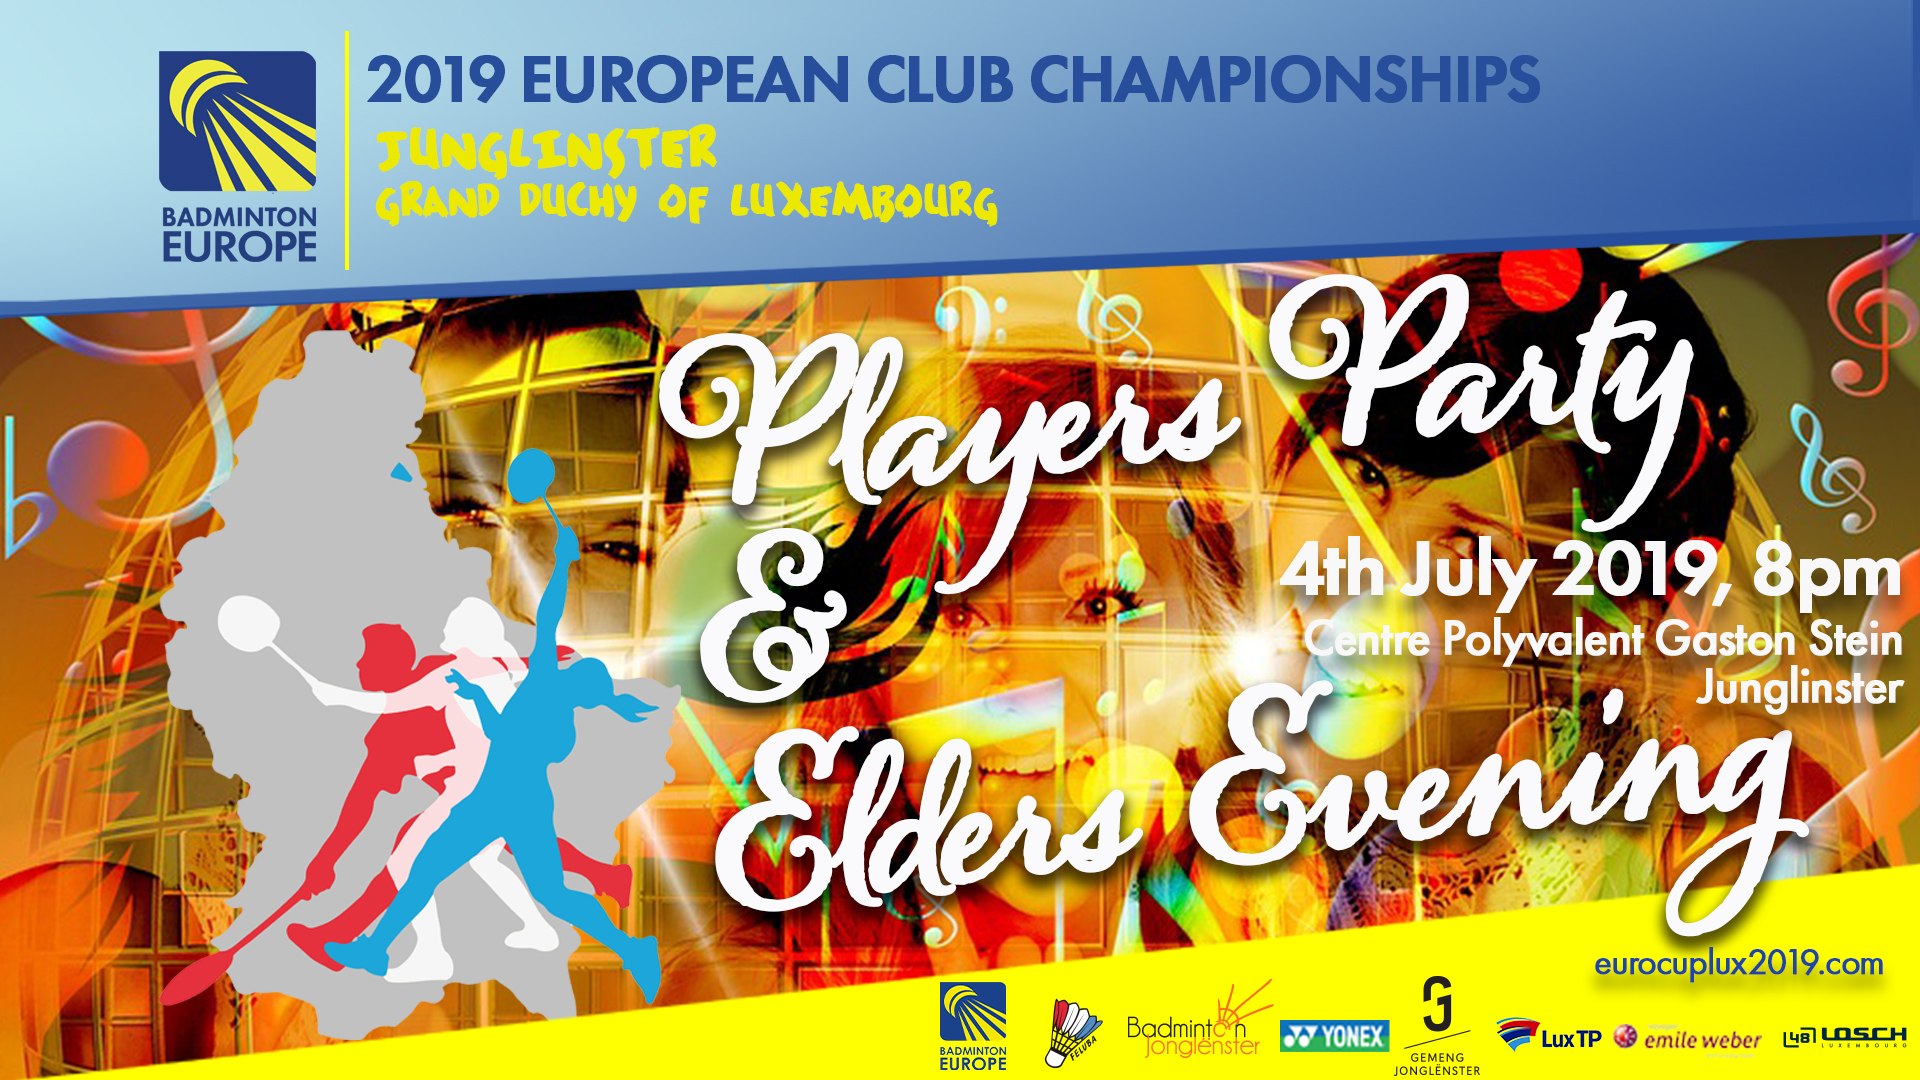 European Club Championships : Players Party and Elders Evening